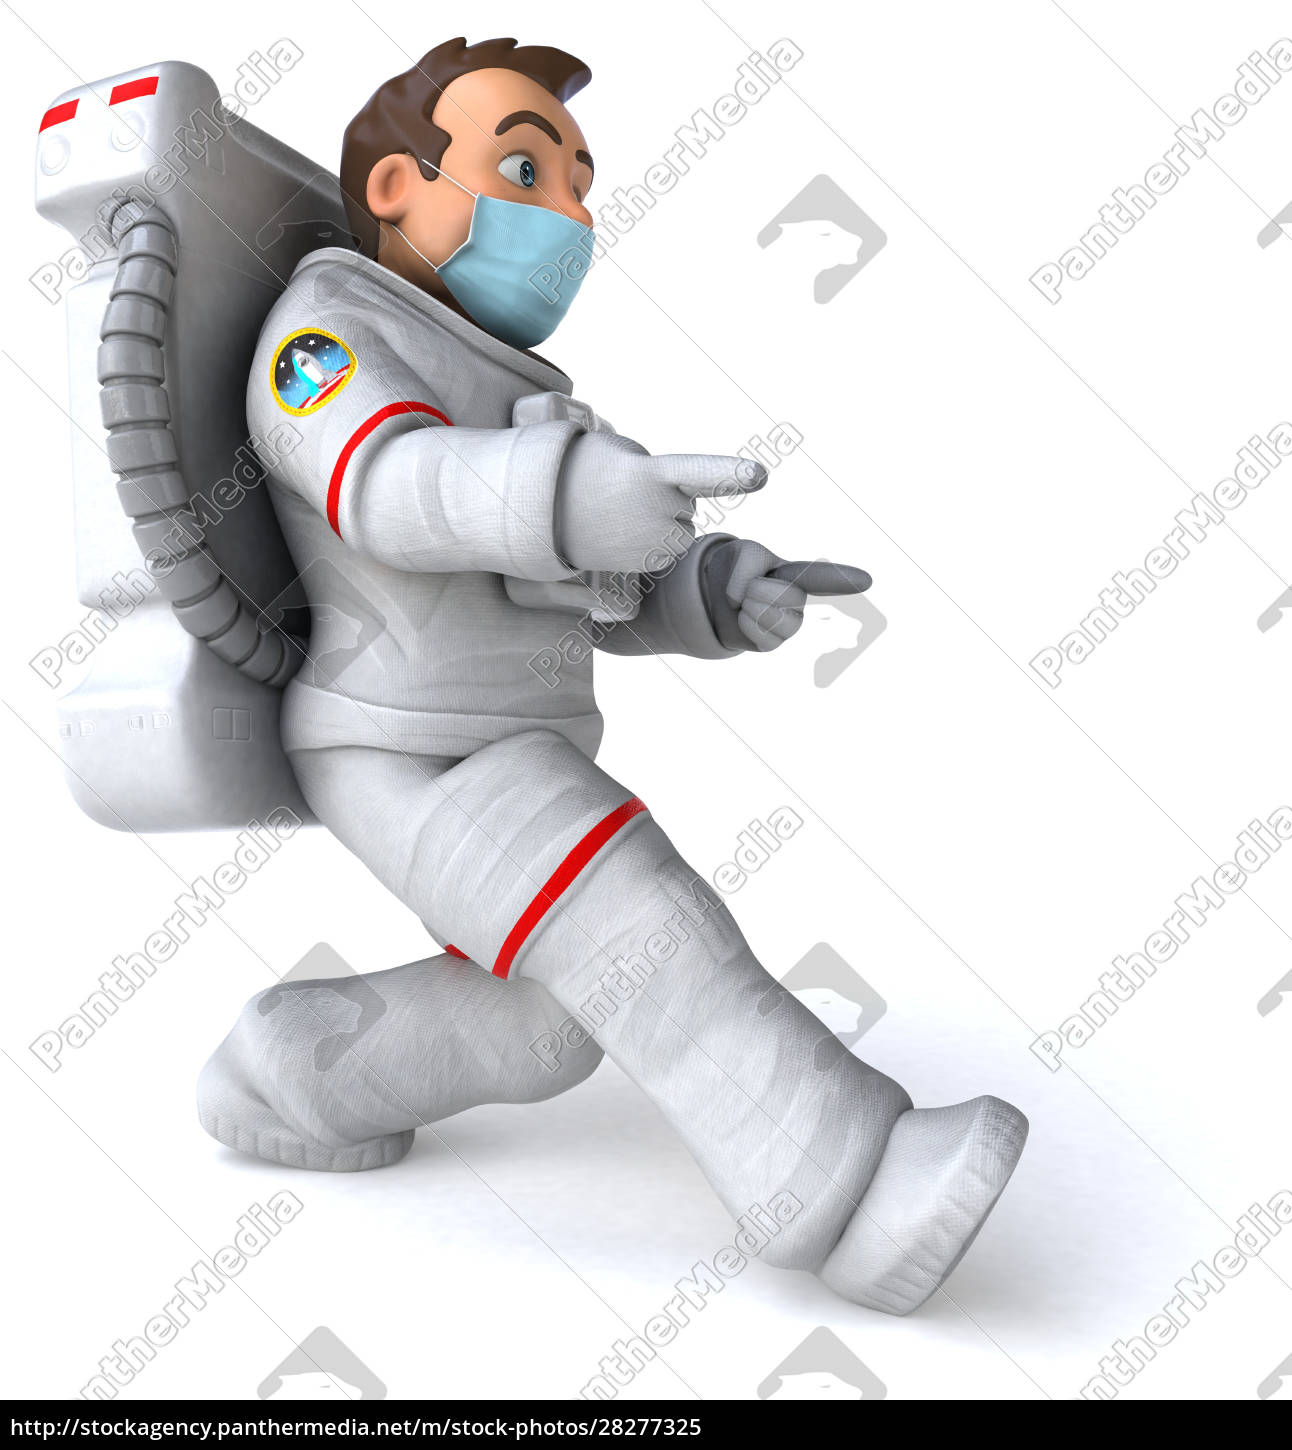 3d, illustration, of, a, cartoon, character - 28277325